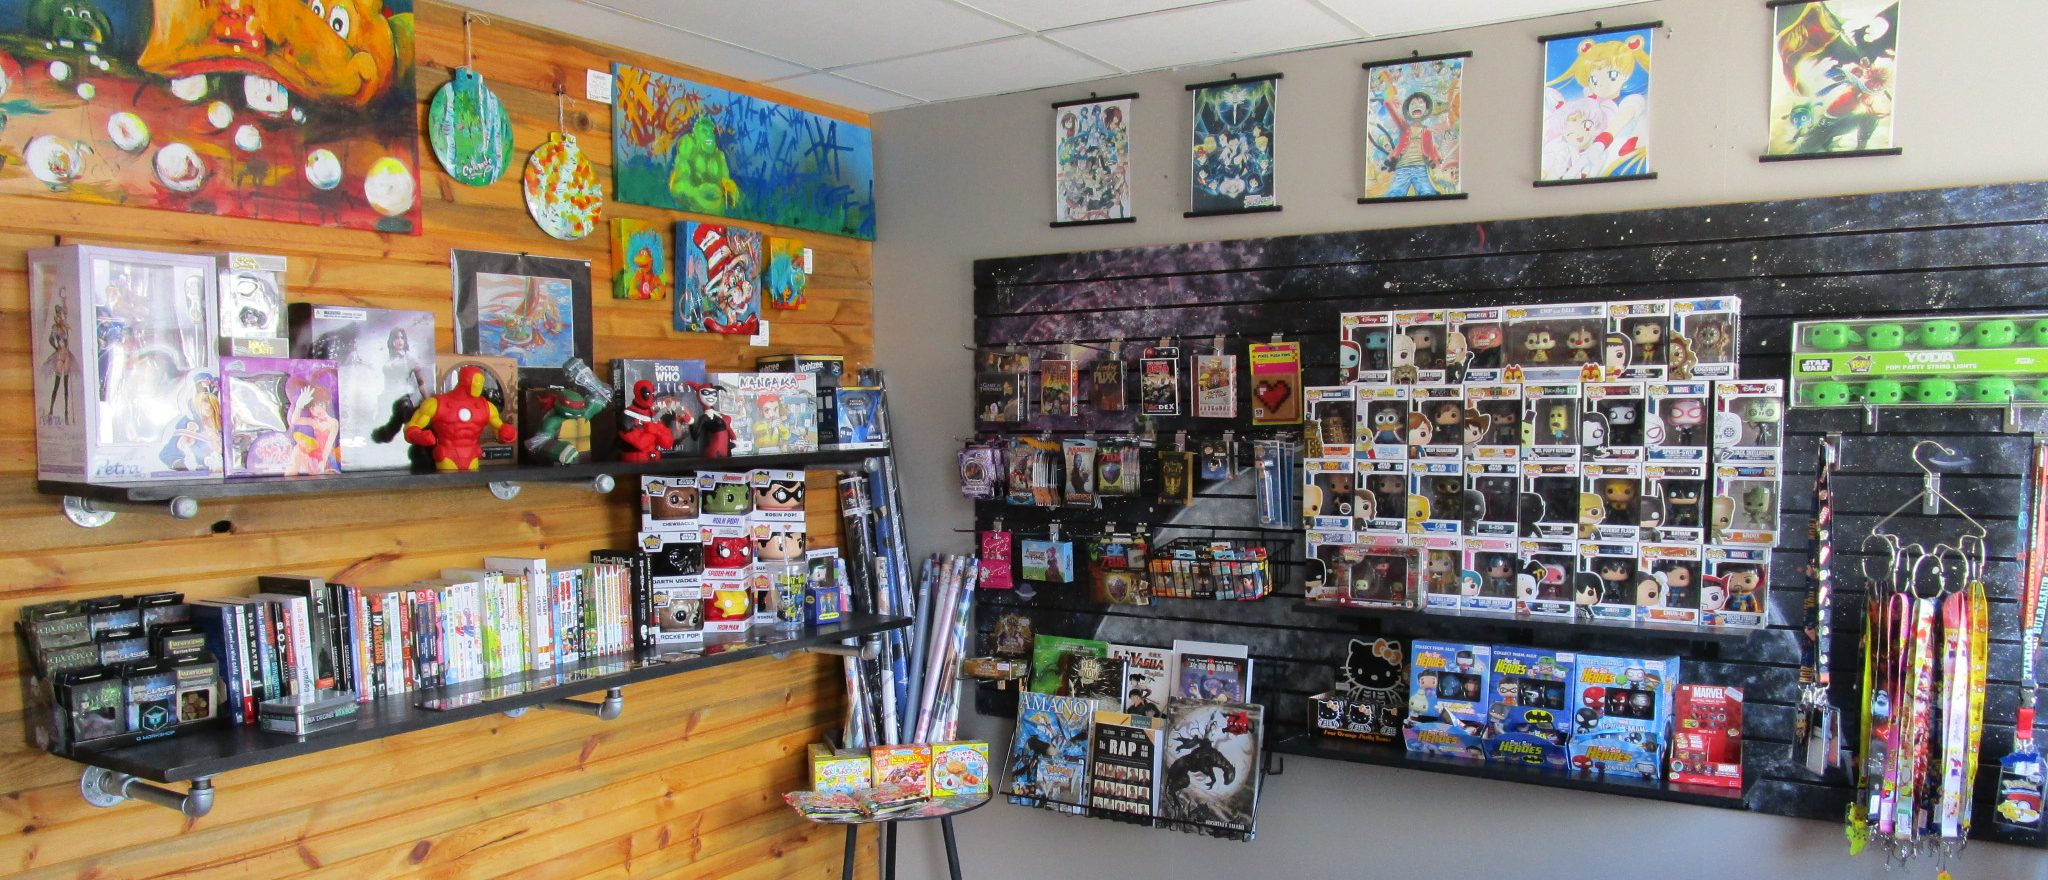 For Those Who Don't Know, I Have a Store Front!